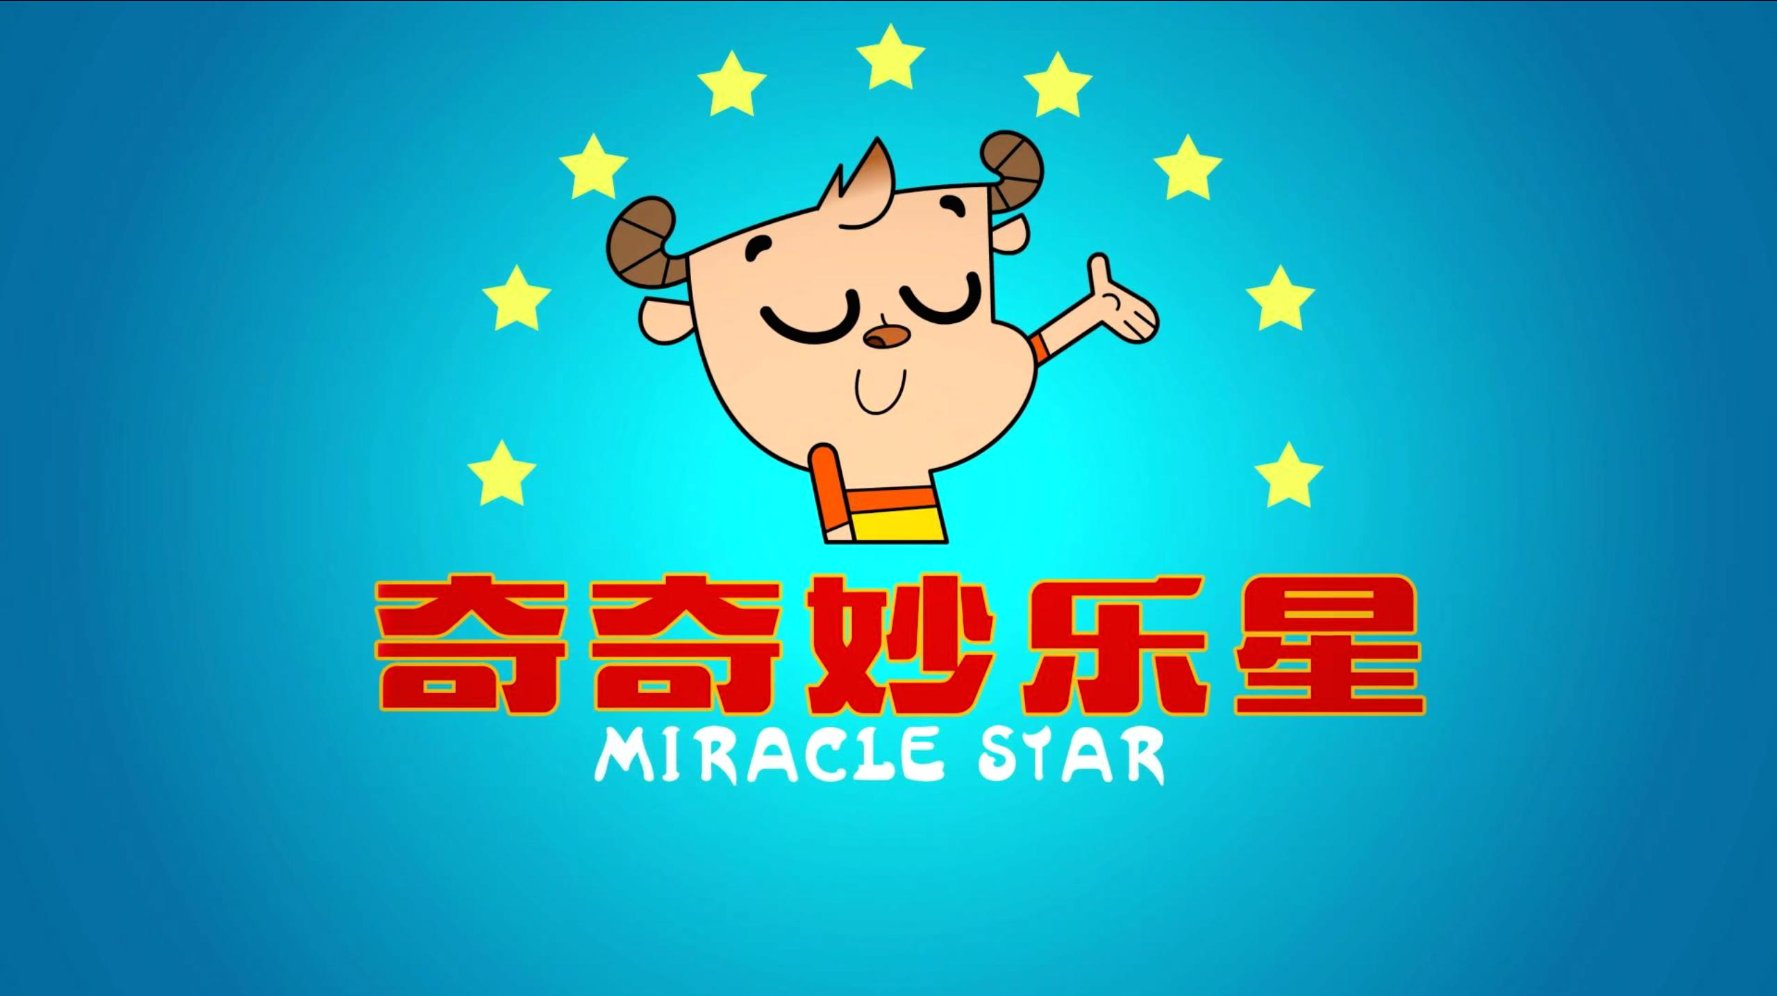 Miracle clipart easy going (TV Miracle Star 2014–2015) Star